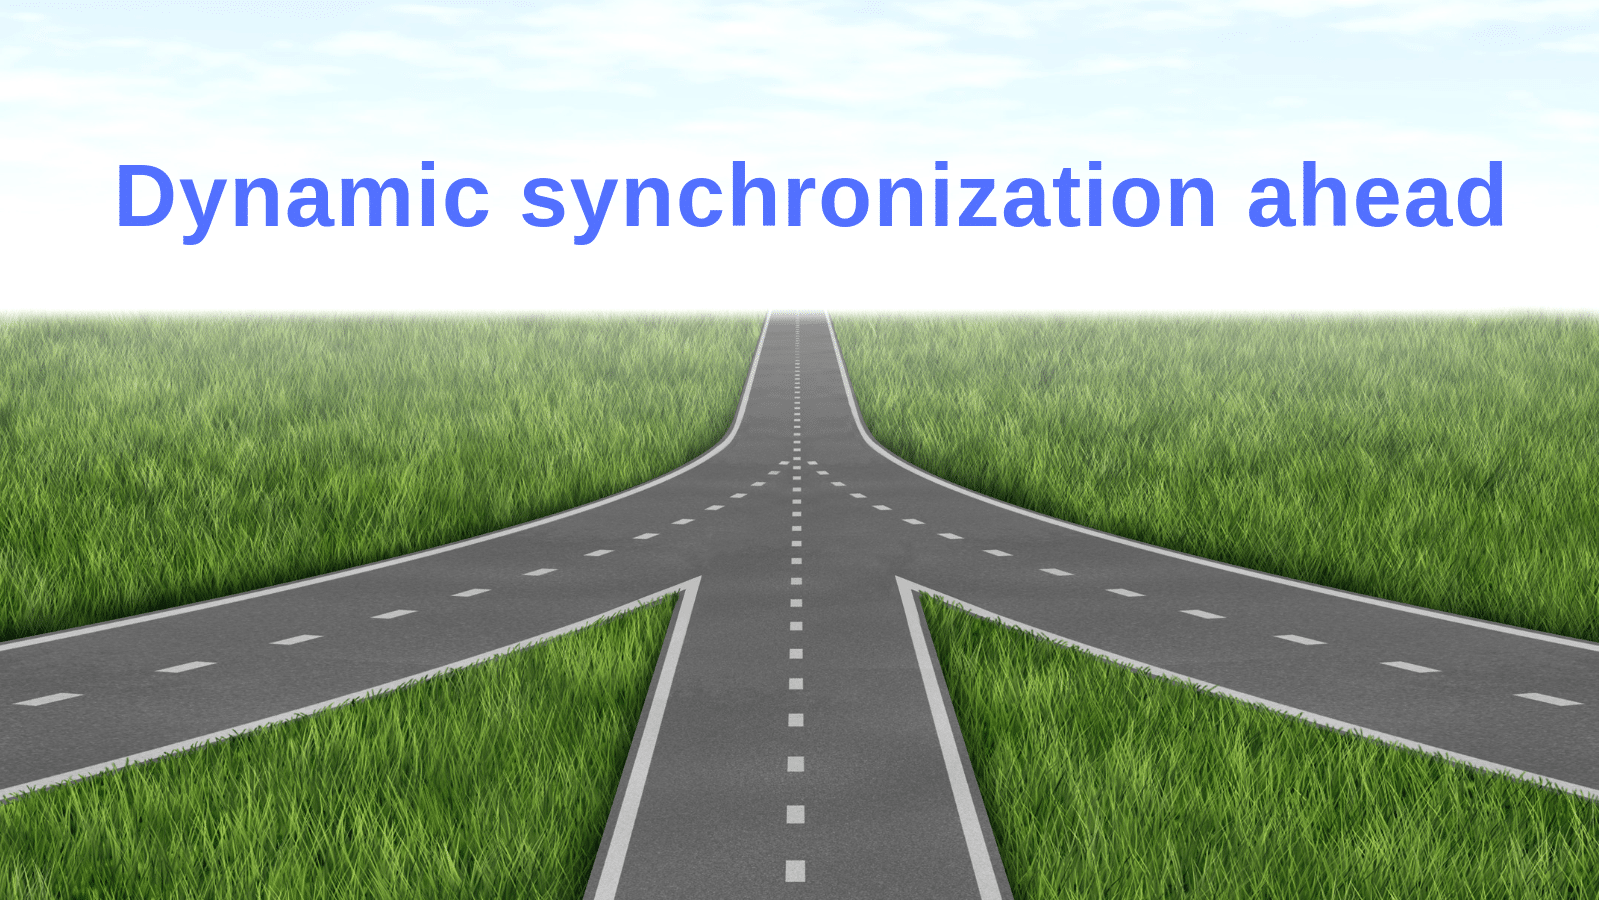 Dynamic synchronization ahead